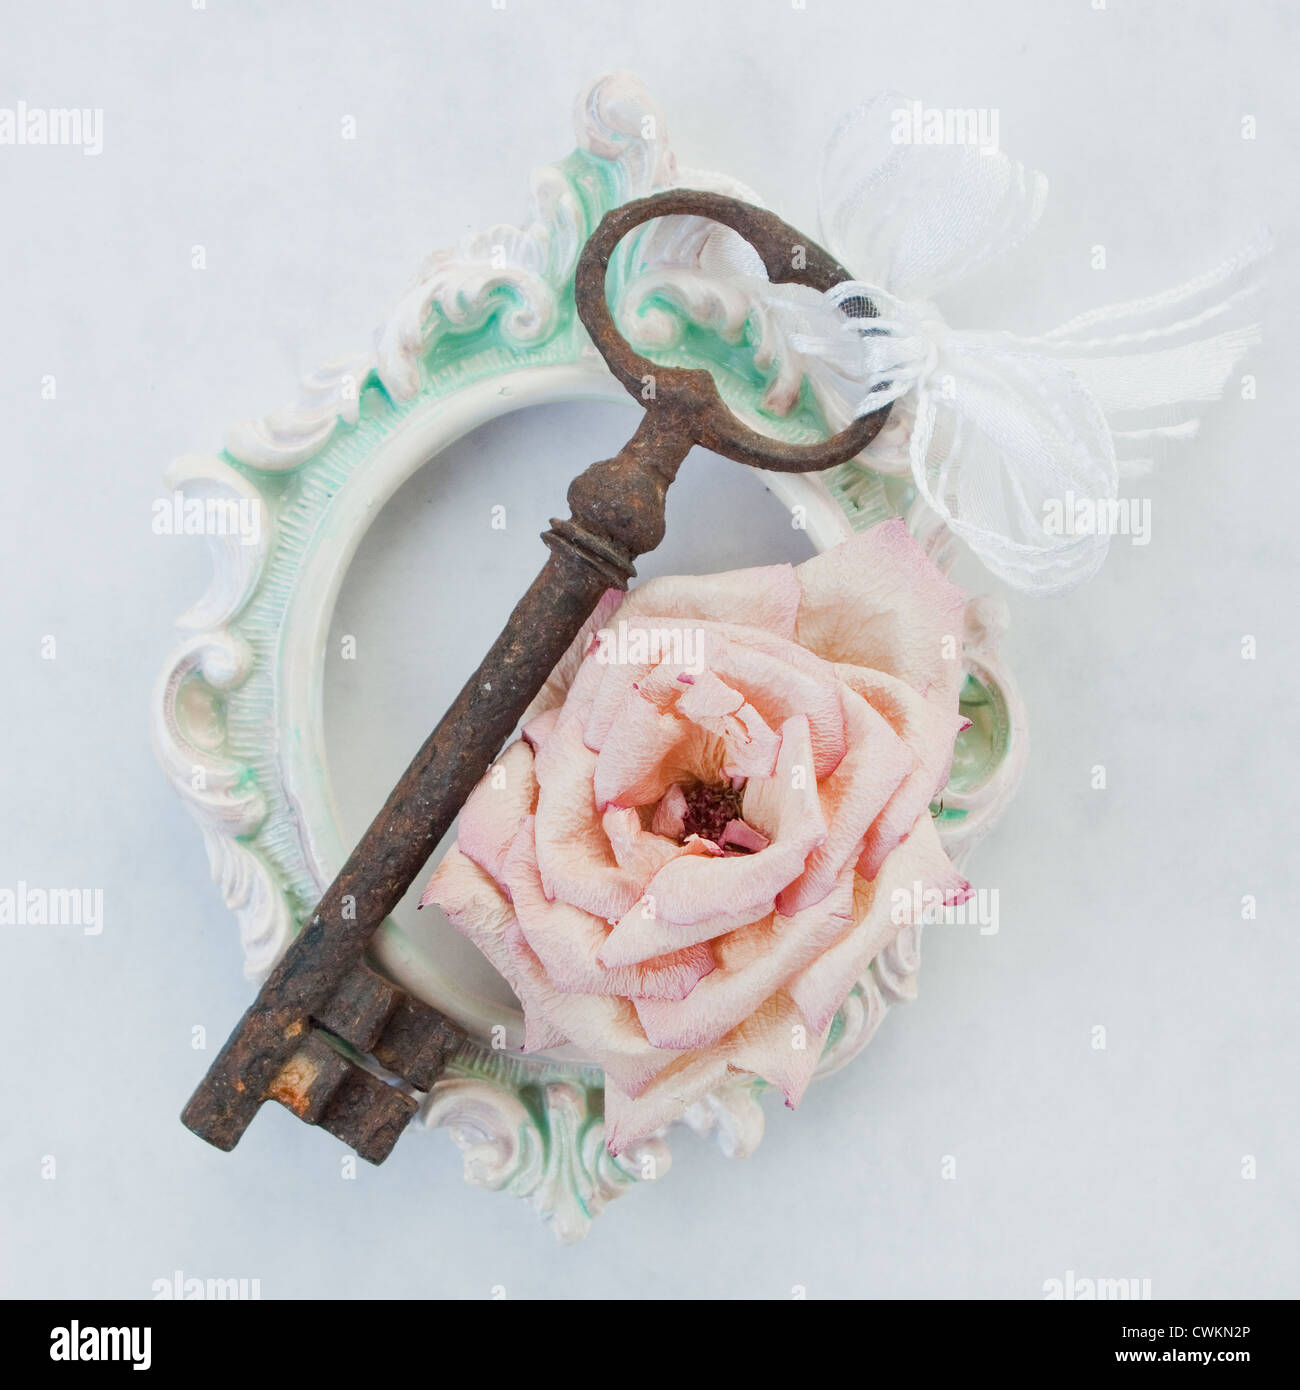 antique, rusty key on an old, vintage frame with dry roses - Stock Image